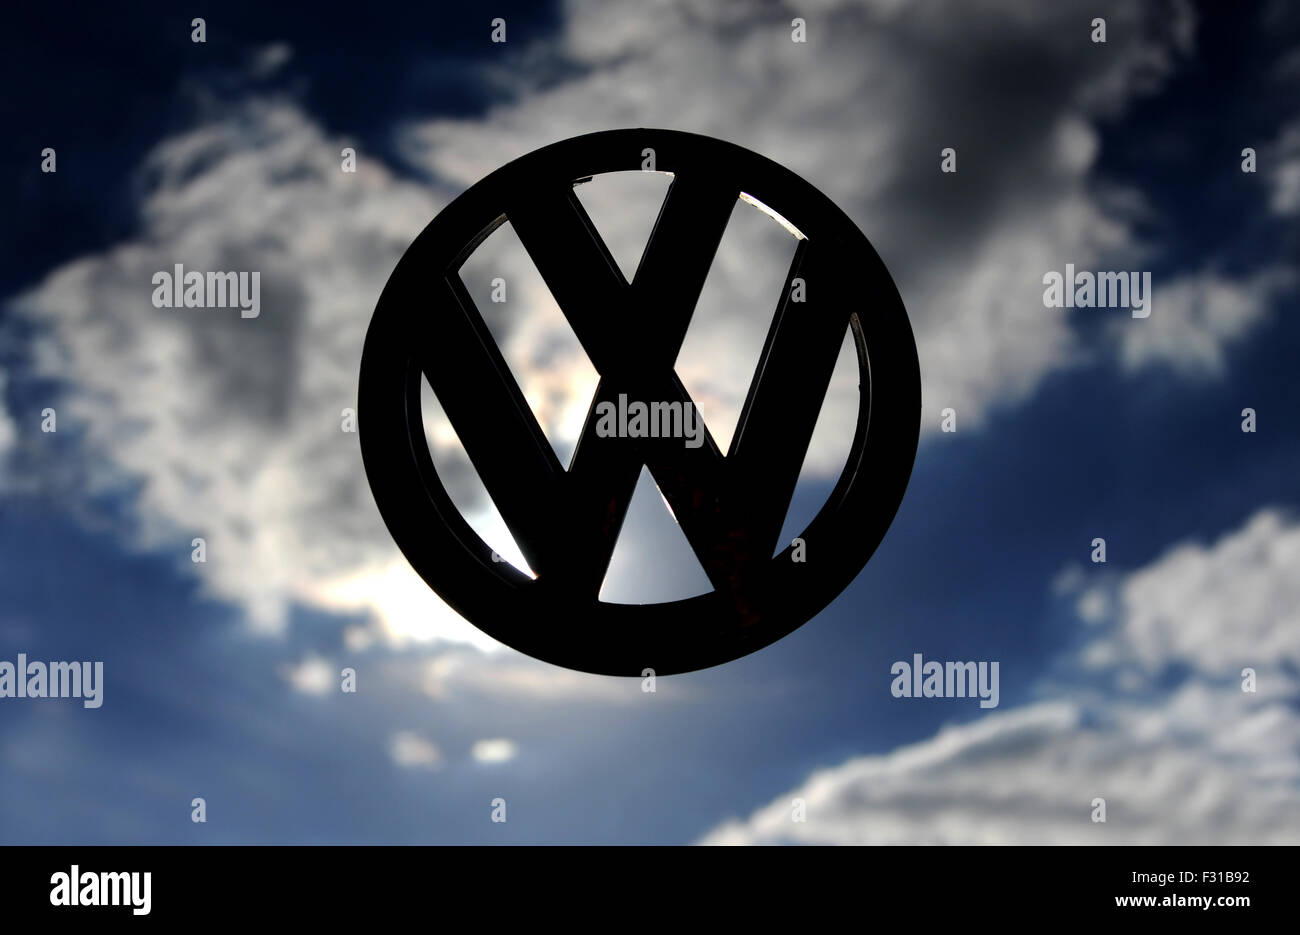 VW VOLKSWAGEN CAR BADGE AGAINST STORMY SKY RE EMISSIONS SCANDAL DIRTY ENGINES MOTOR INDUSTRY STORY LOGO EMBLEM TESTING - Stock Image